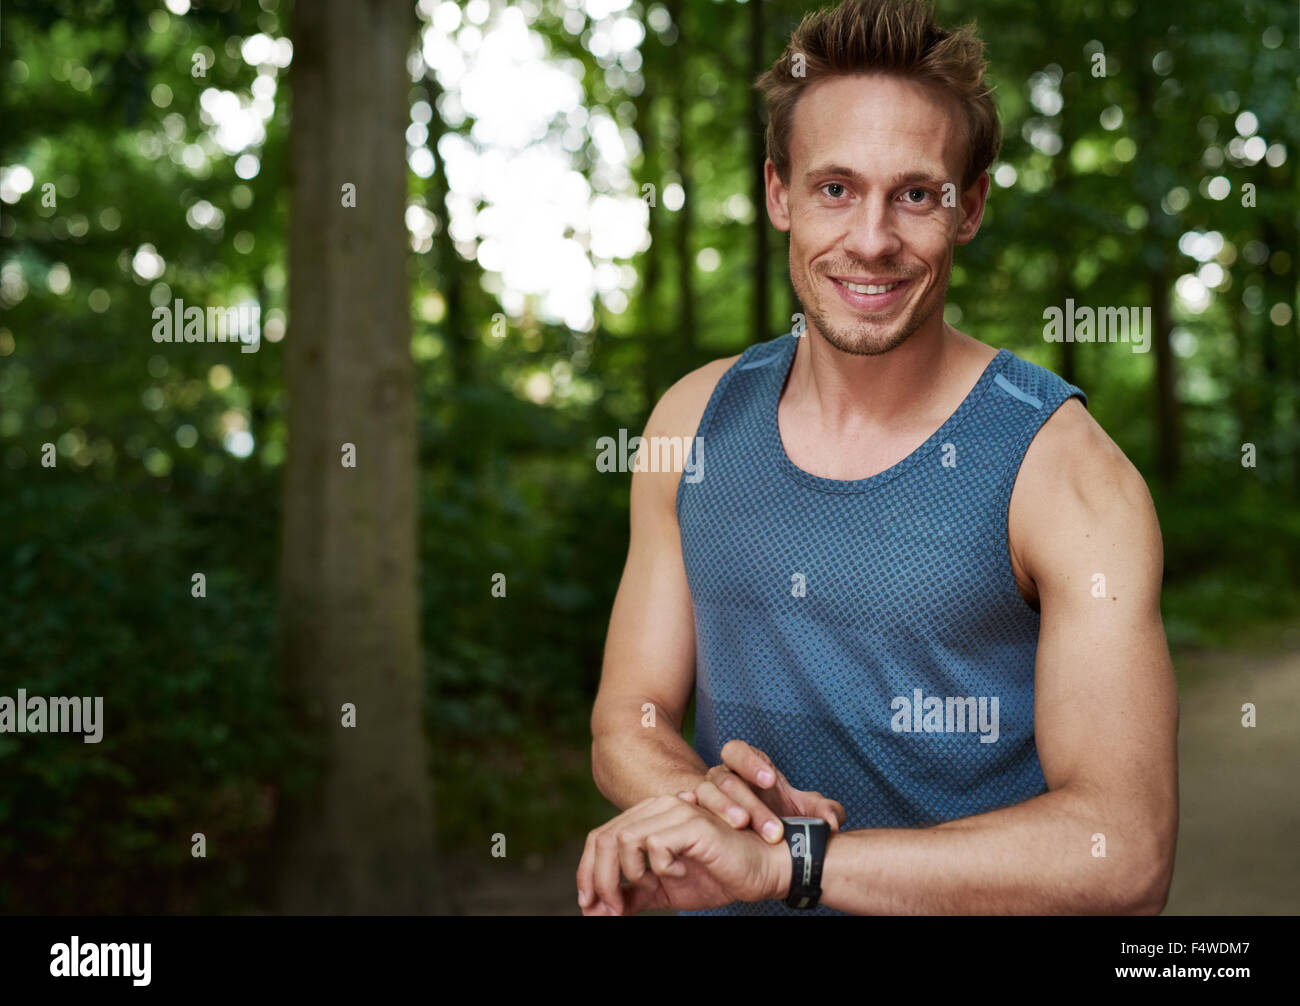 Handsome friendly muscular athlete setting his stopwatch as he prepares for a training run outdoors in the park - Stock Image